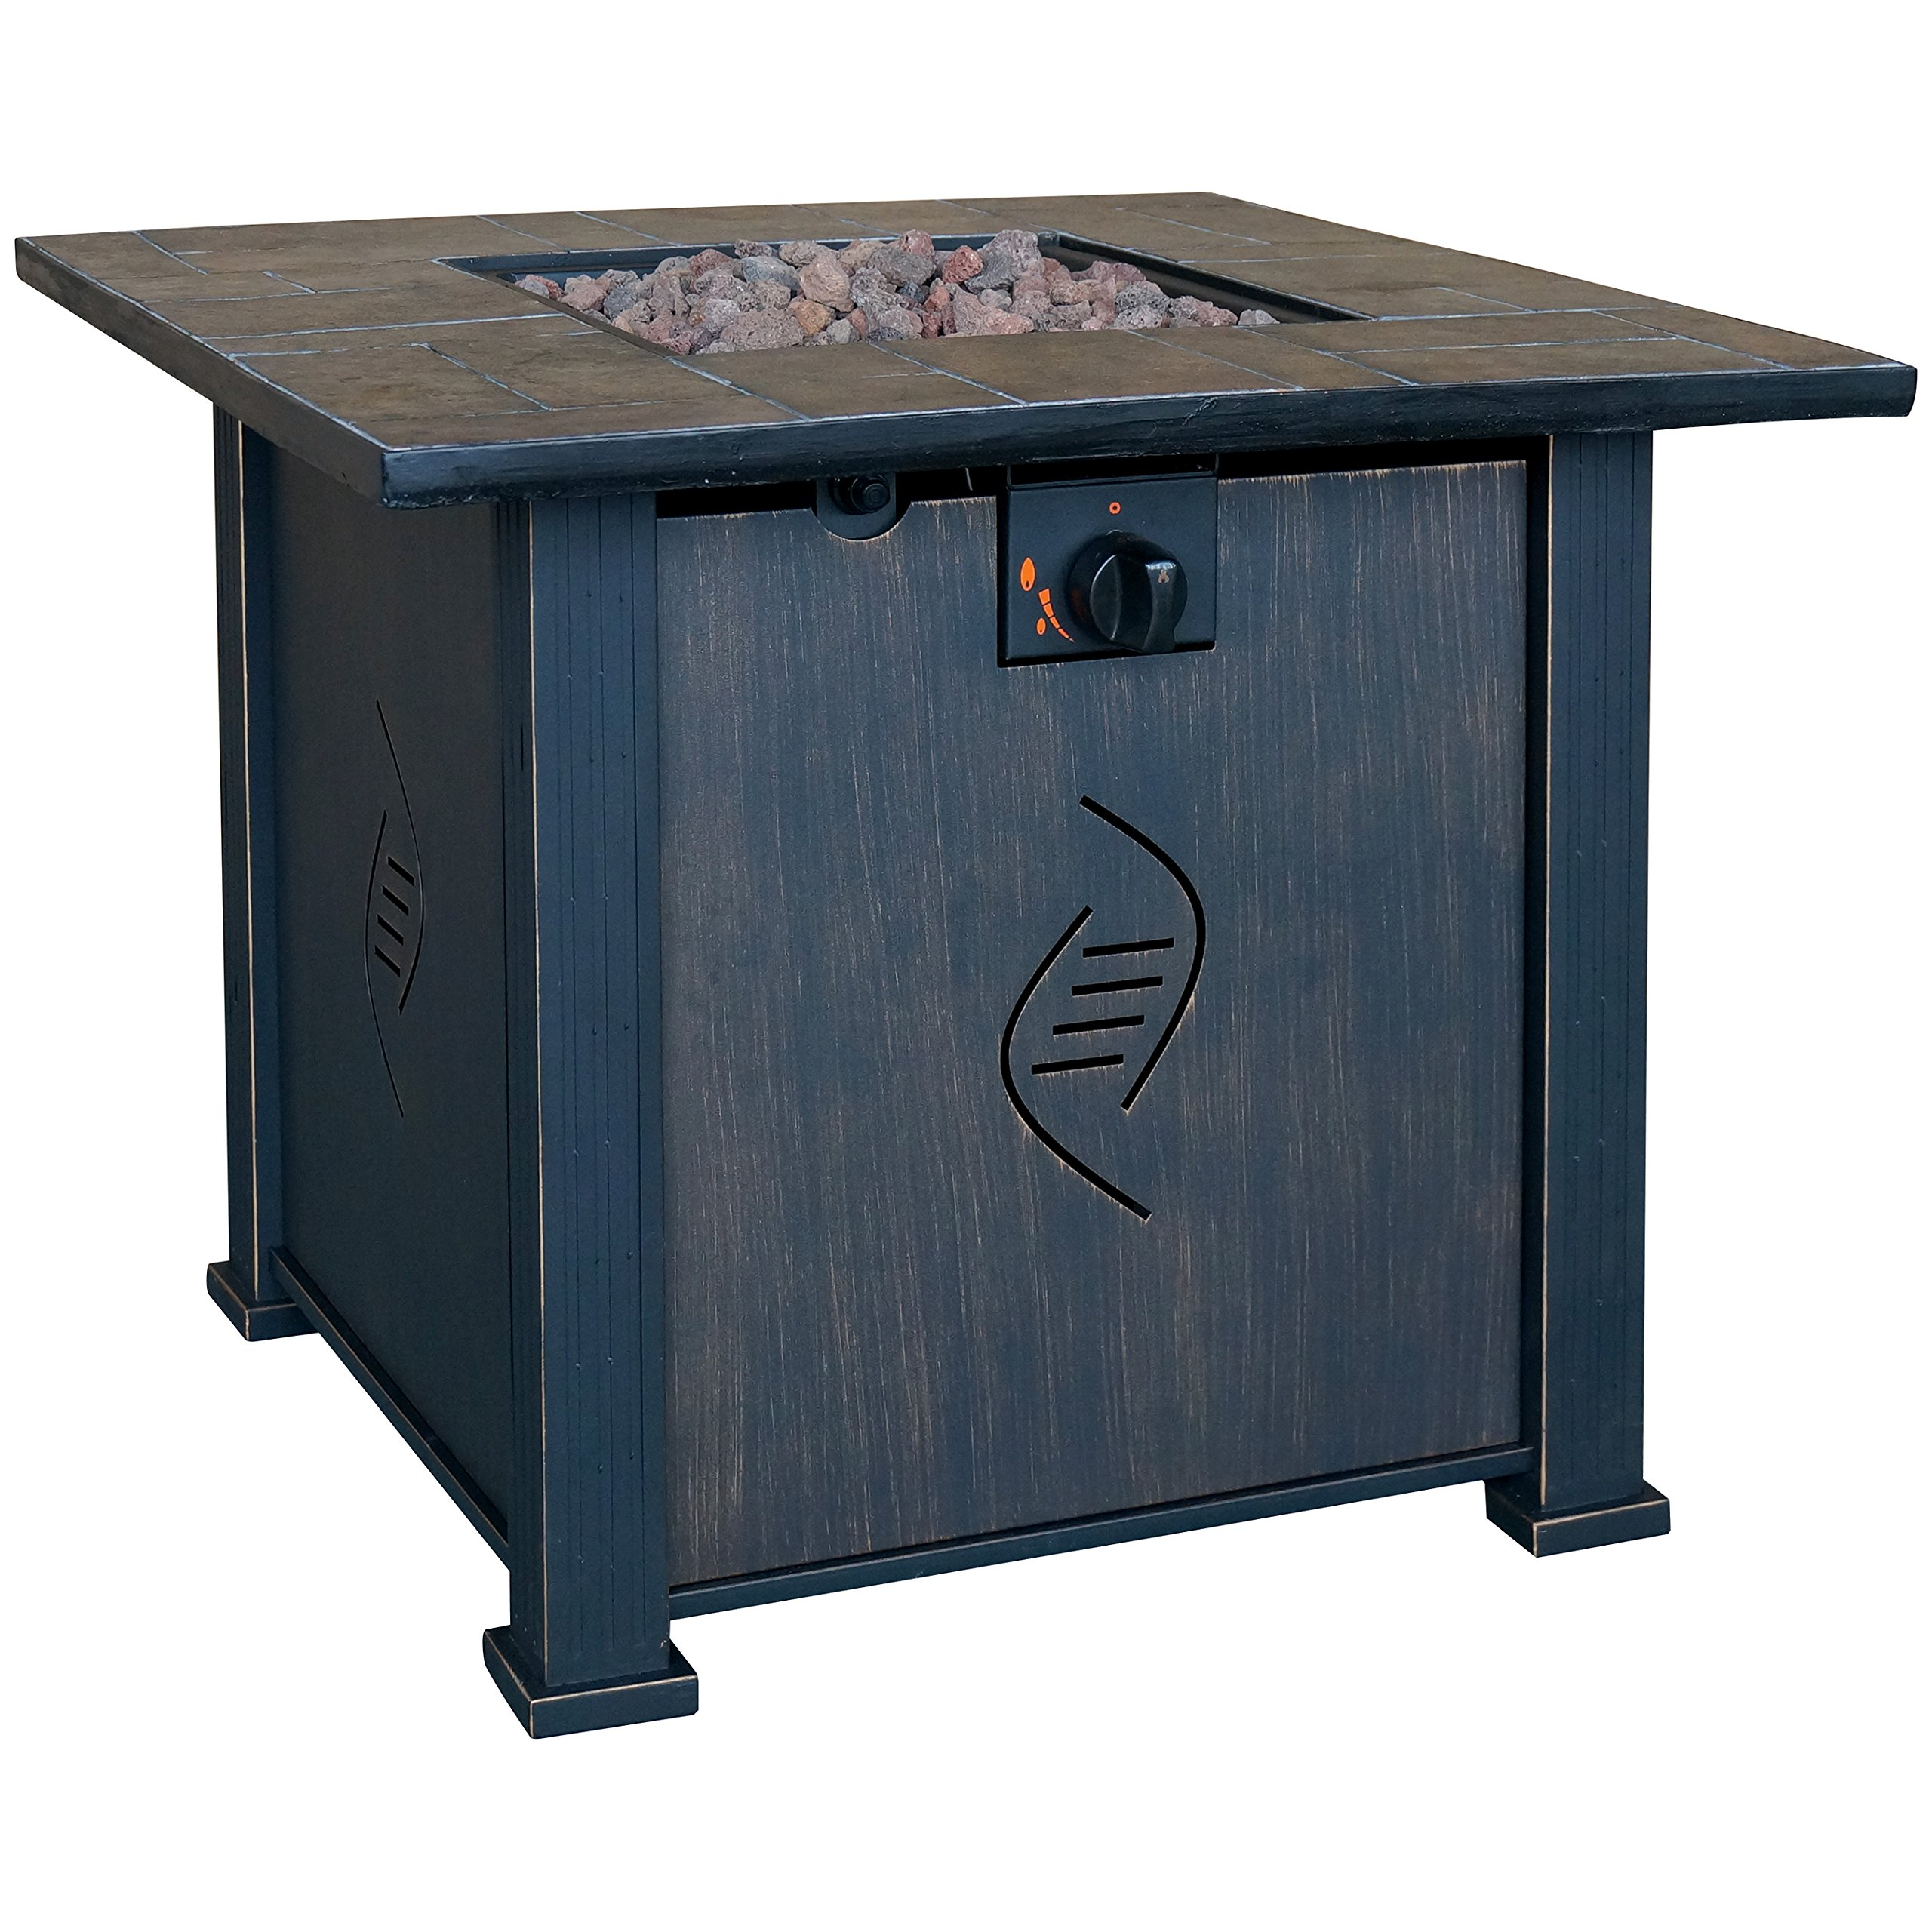 Bond 68487A  Lari Outdoor Gas Fire Pit Table with Antique Wooden Finish, 24.2-Inches by 30-Inches by 30-Inches